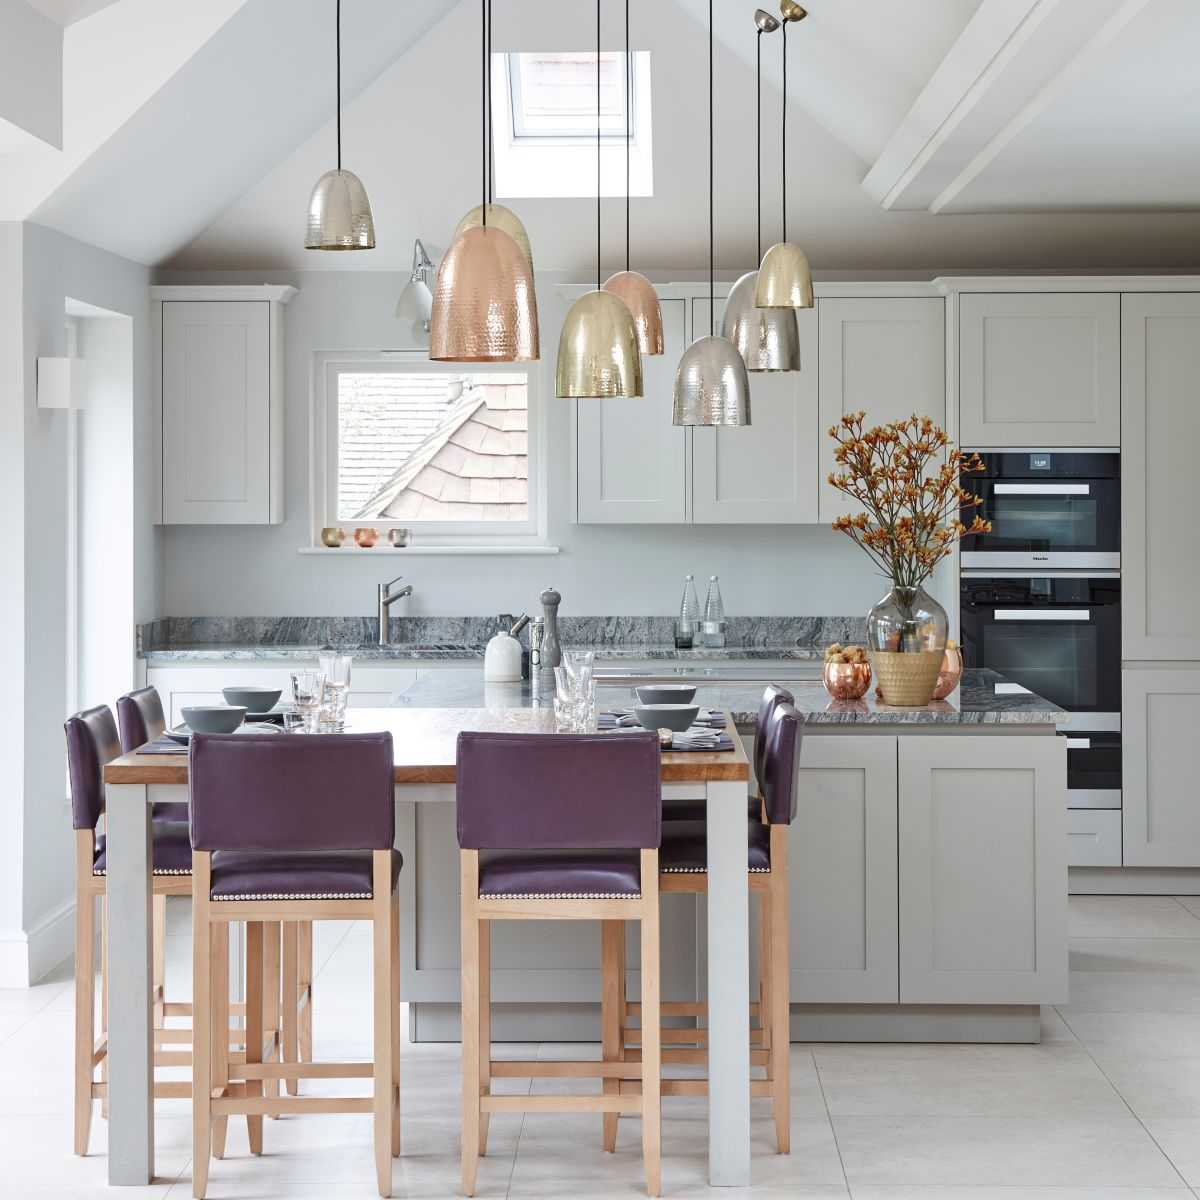 How to plan kitchen lighting  Real Homes